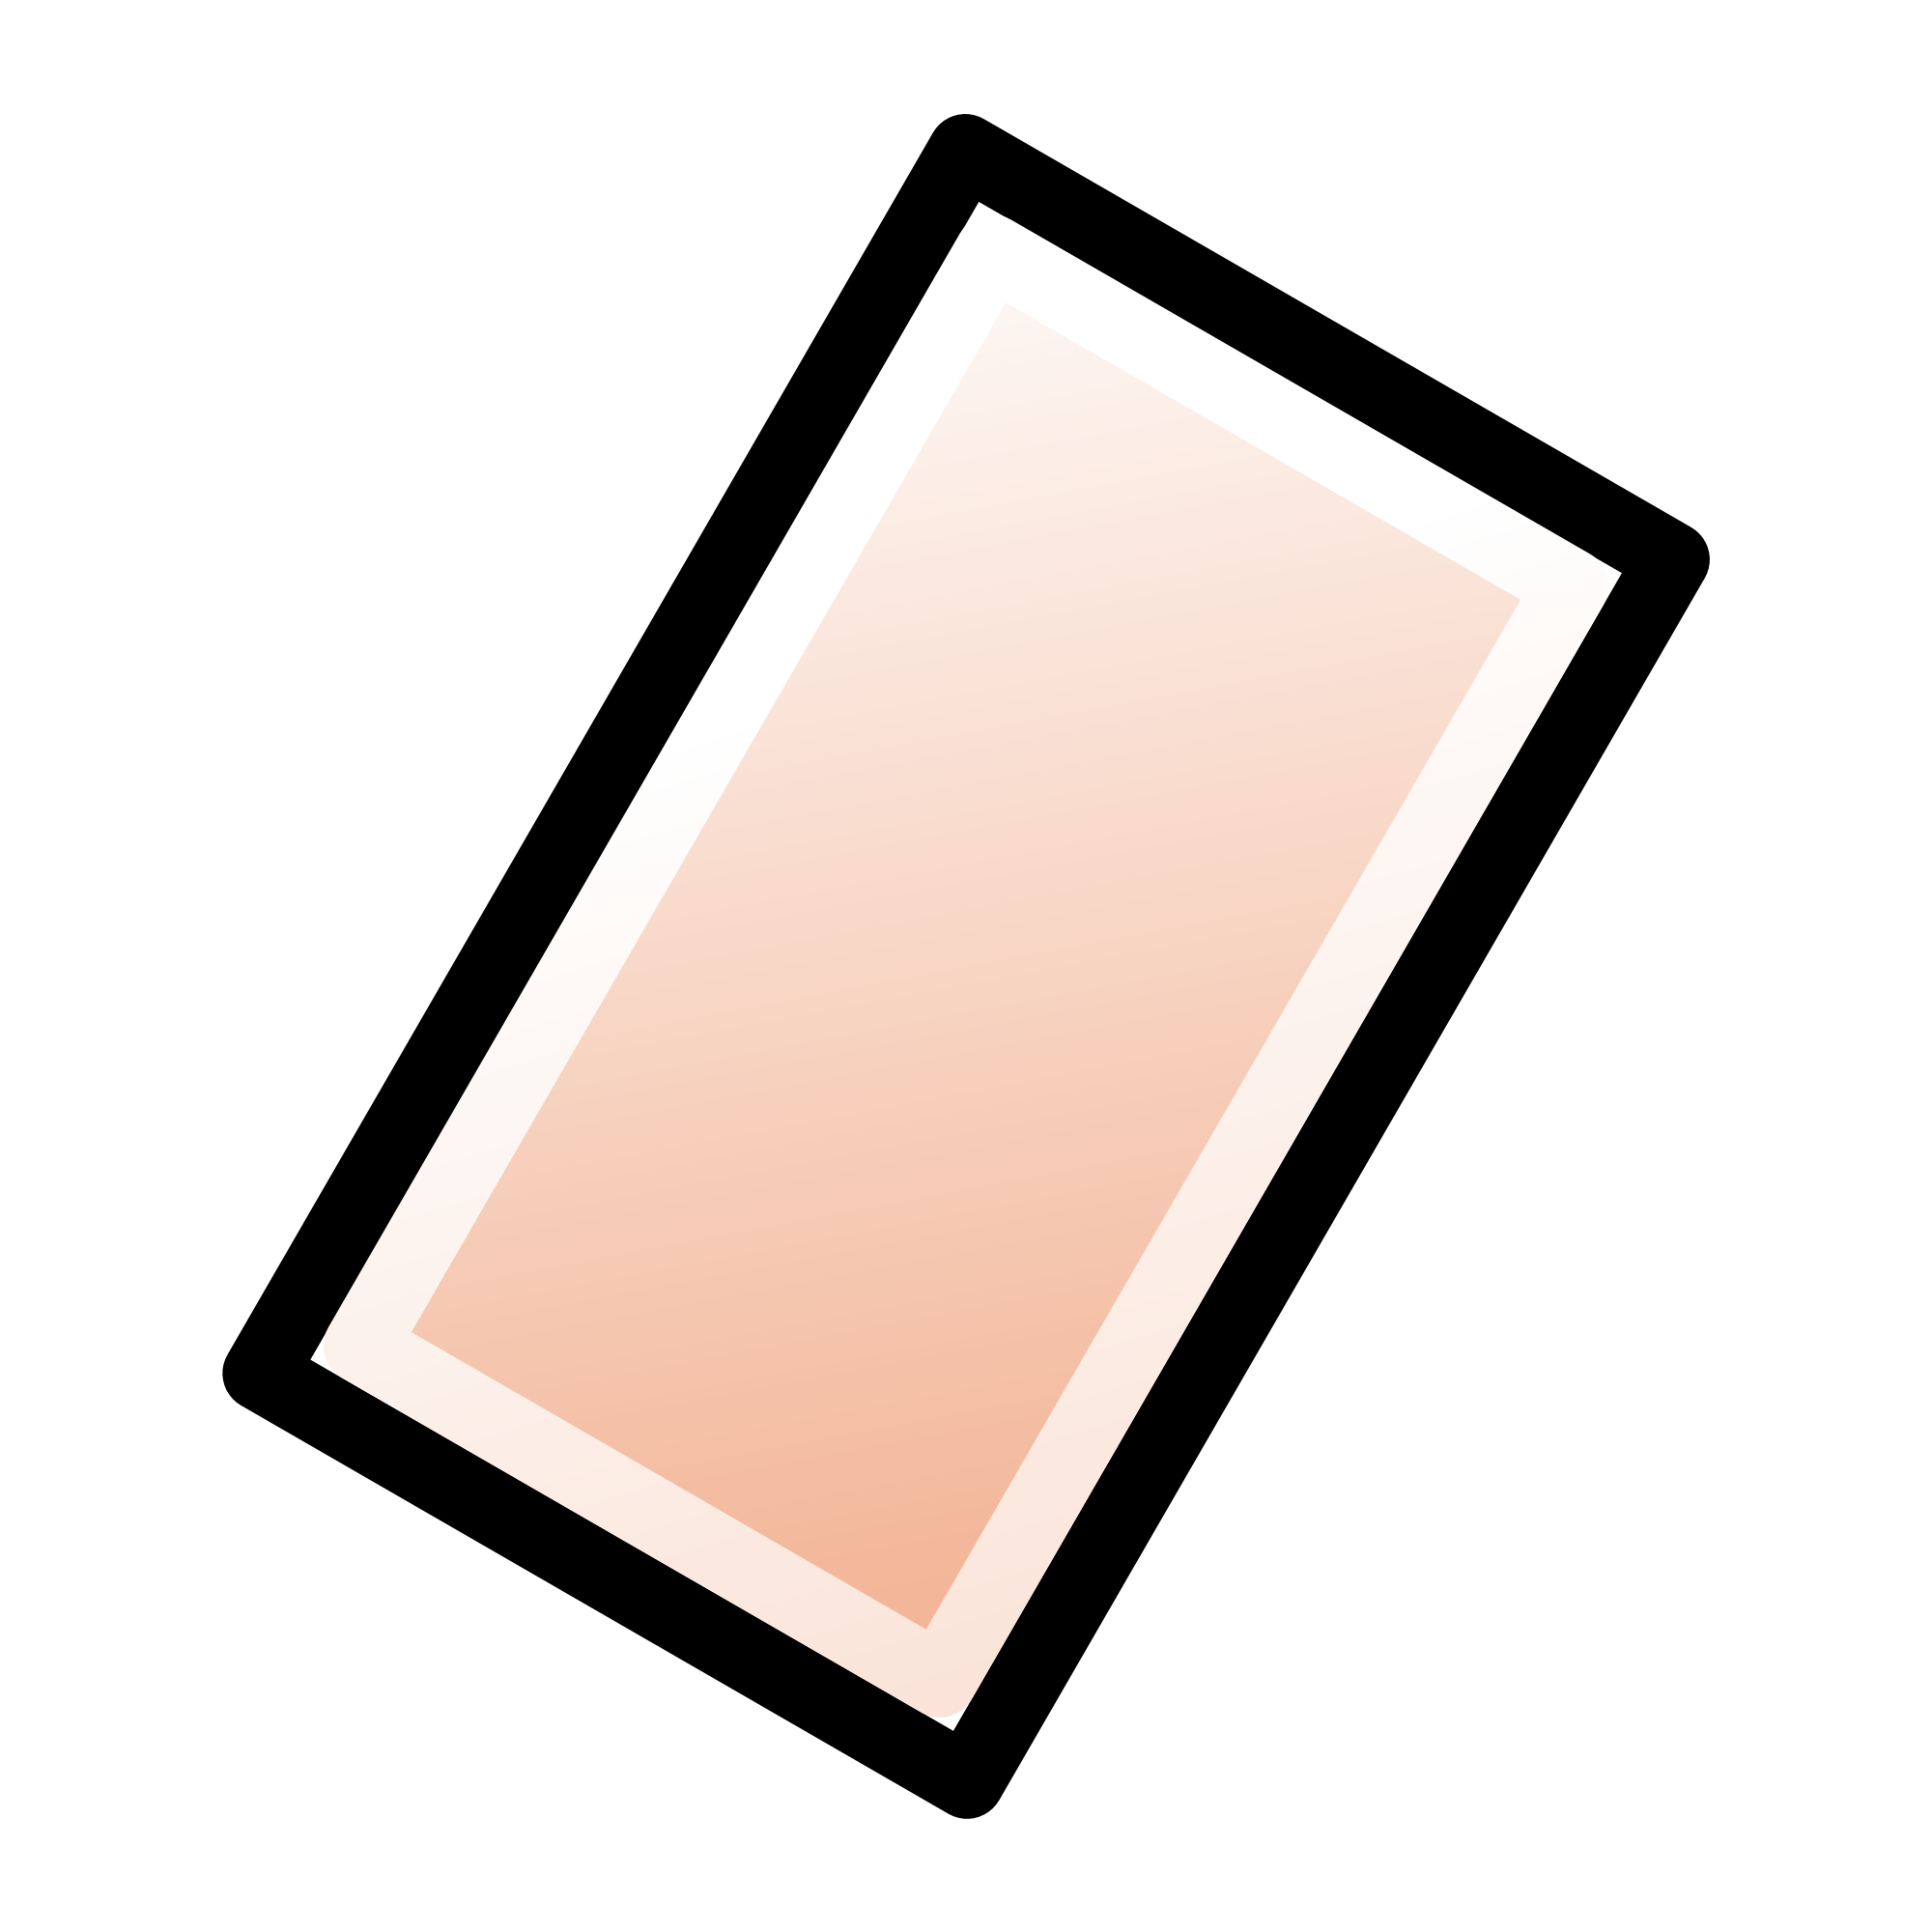 graphic library download eraser drawing rendering #96259129